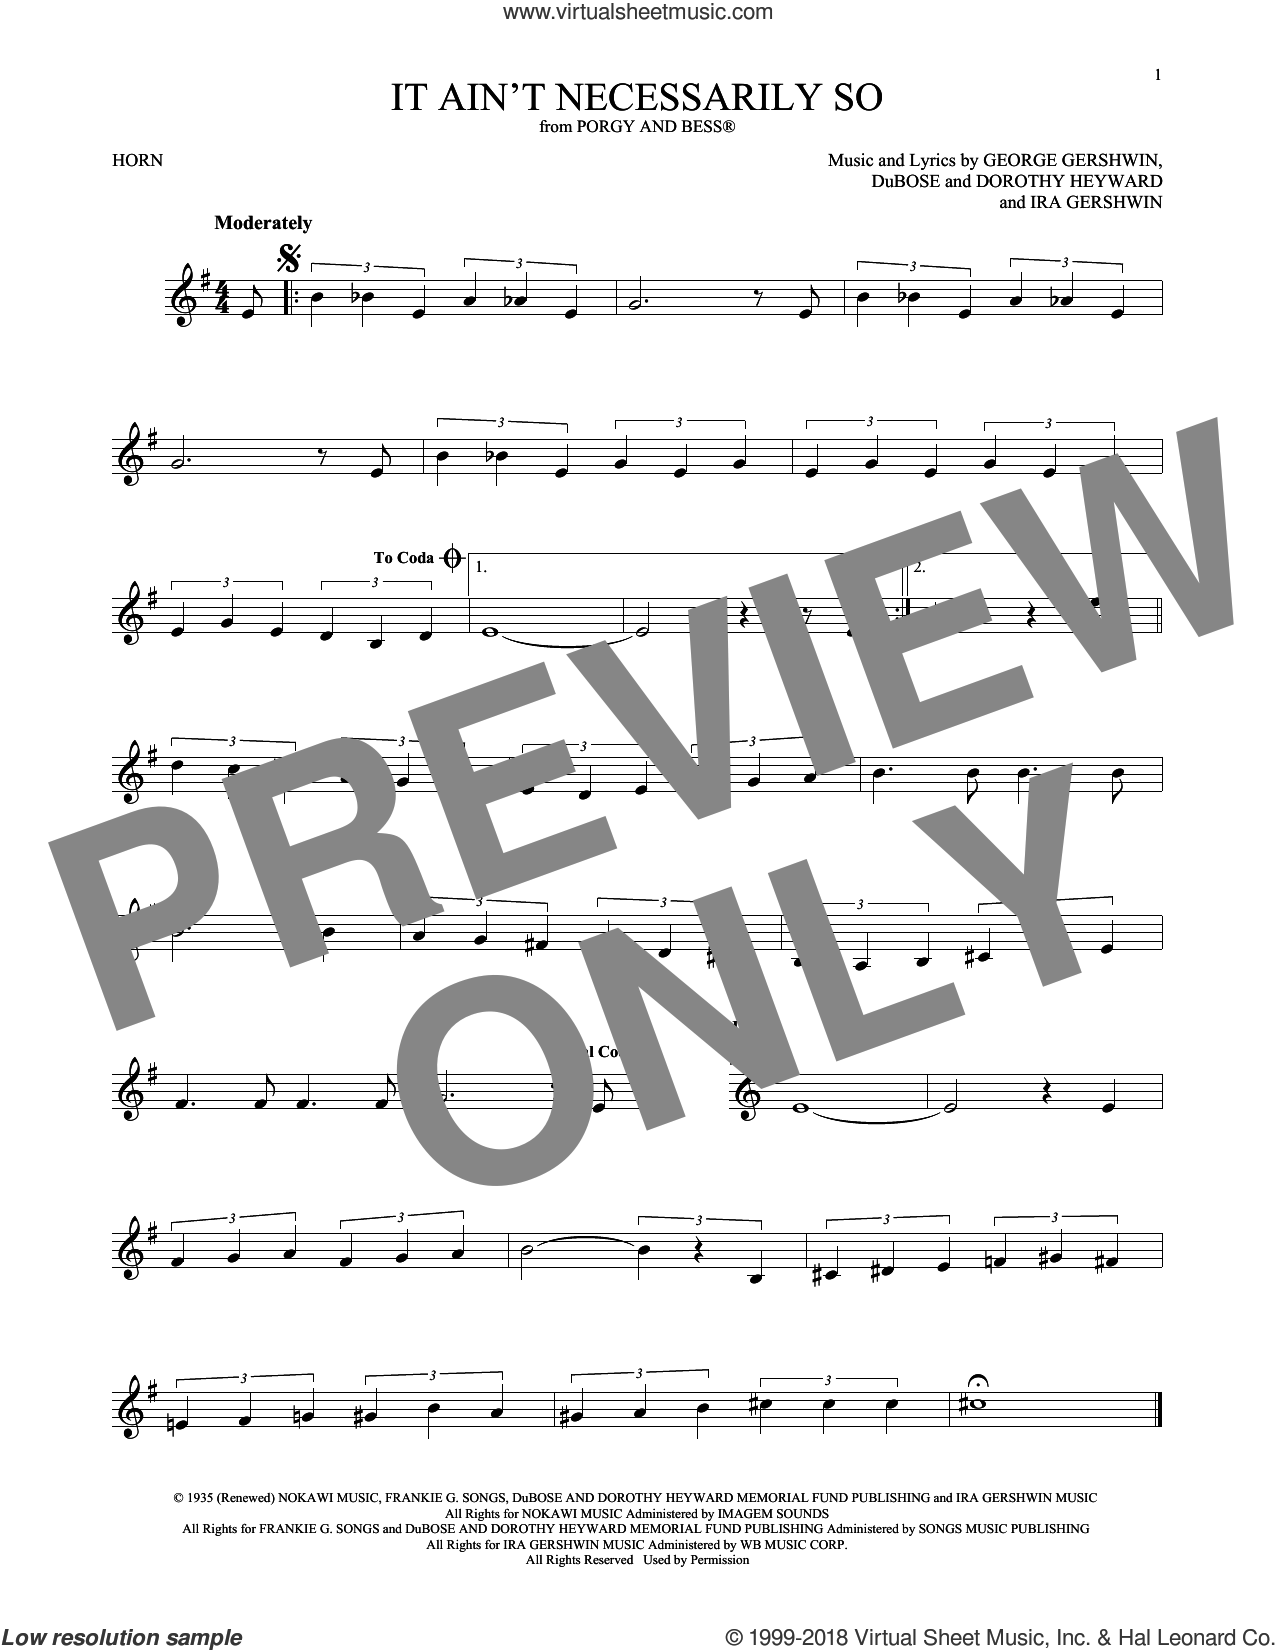 It Ain't Necessarily So sheet music for horn solo by George Gershwin, Dorothy Heyward, DuBose Heyward and Ira Gershwin, intermediate